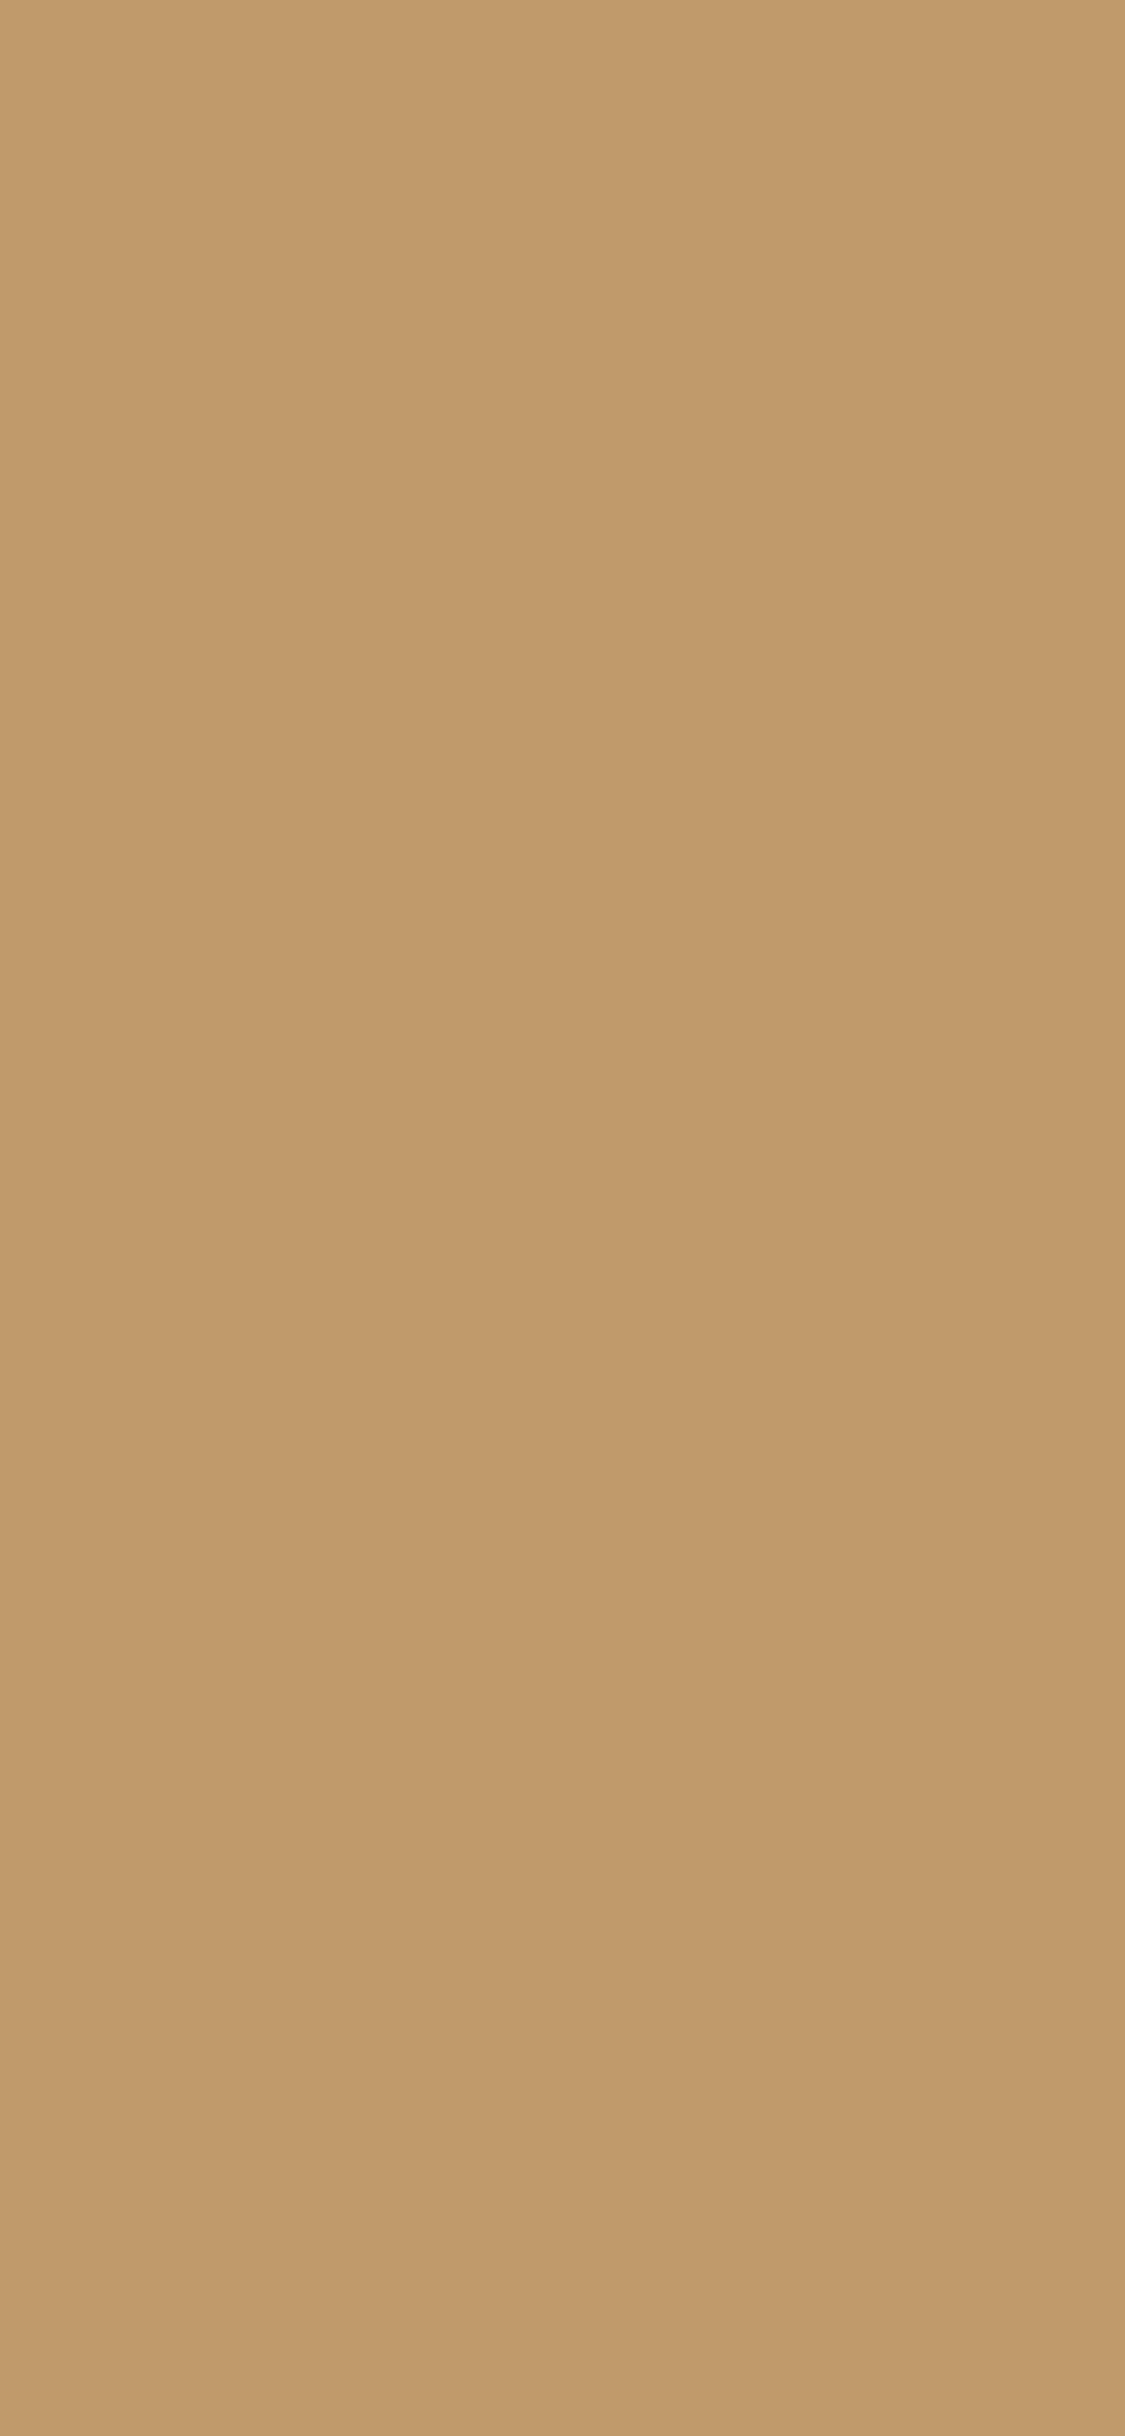 1125x2436 Wood Brown Solid Color Background